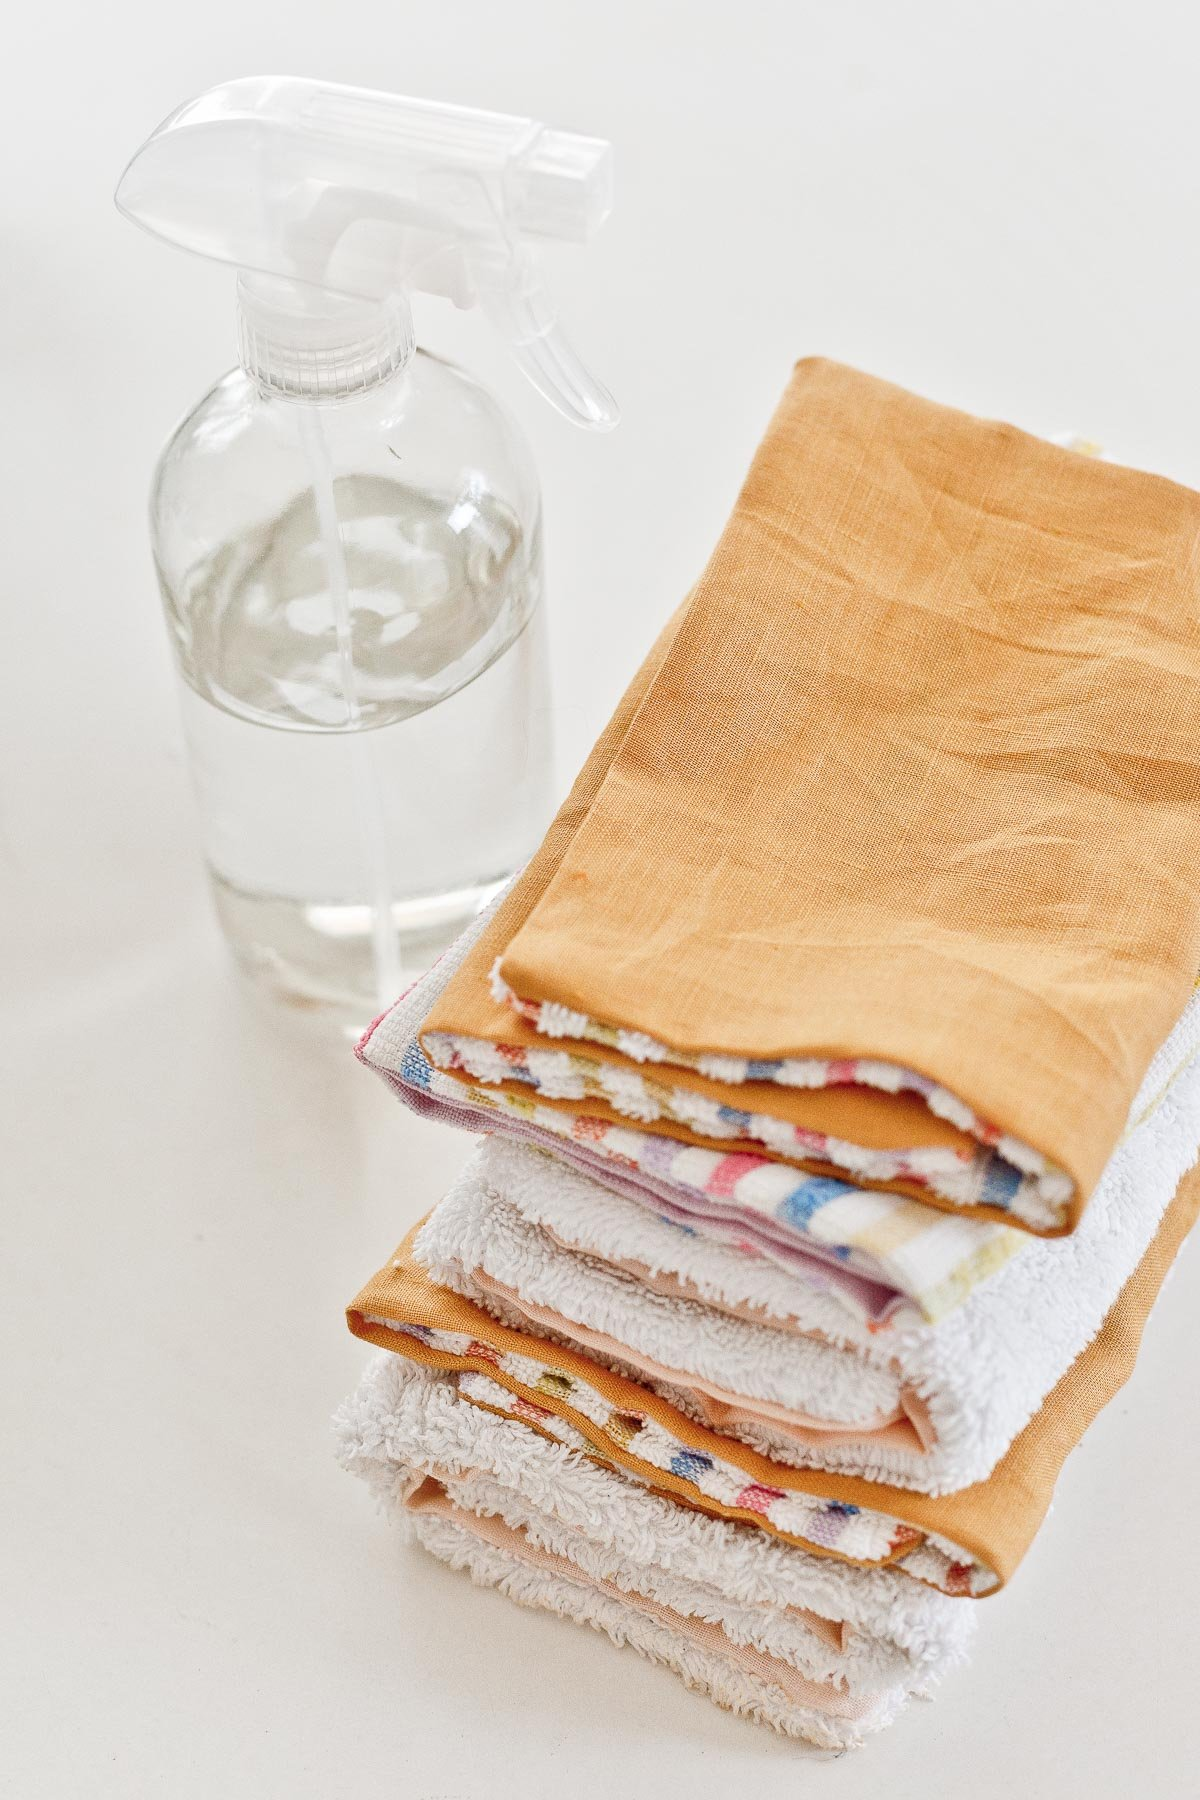 A stack of DIY unpaper towels for everything from cleaning and spills to wiping any faces, etc.